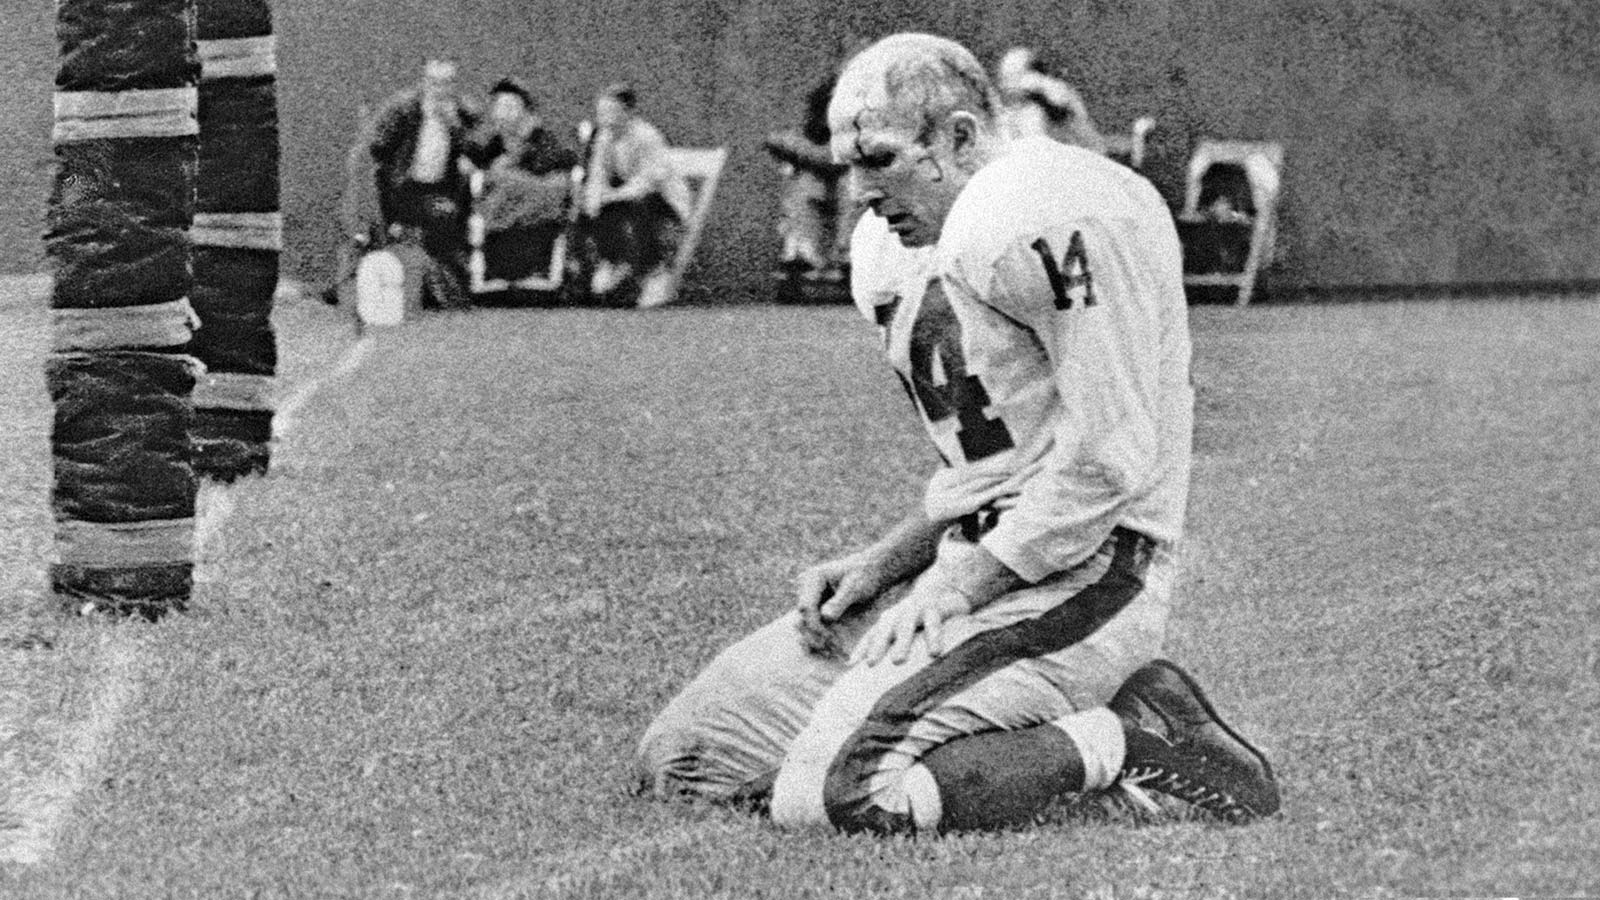 Giants legend YA Tittle died at age 90